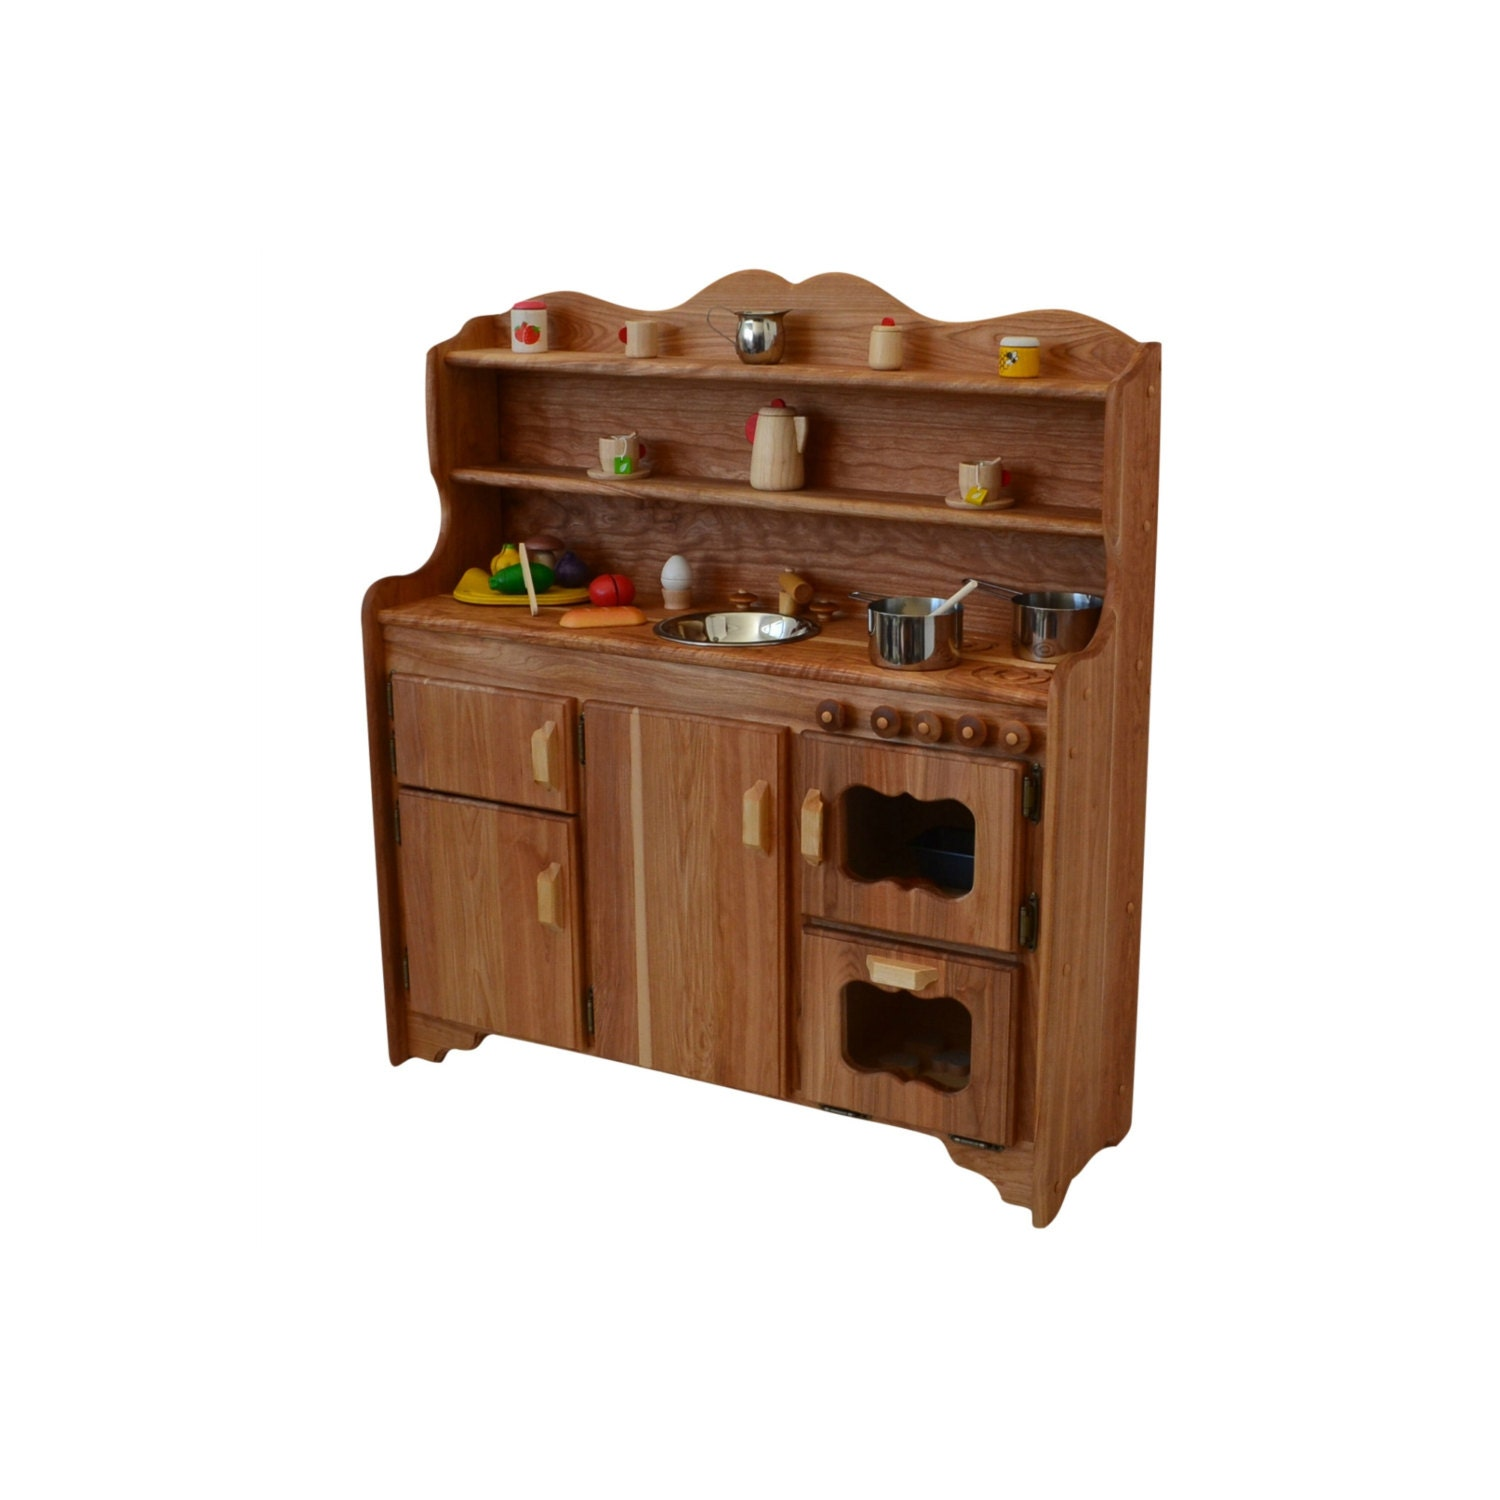 Waldorf Wooden Toy Kitchen Hardwood Play Kitchen Play Stove